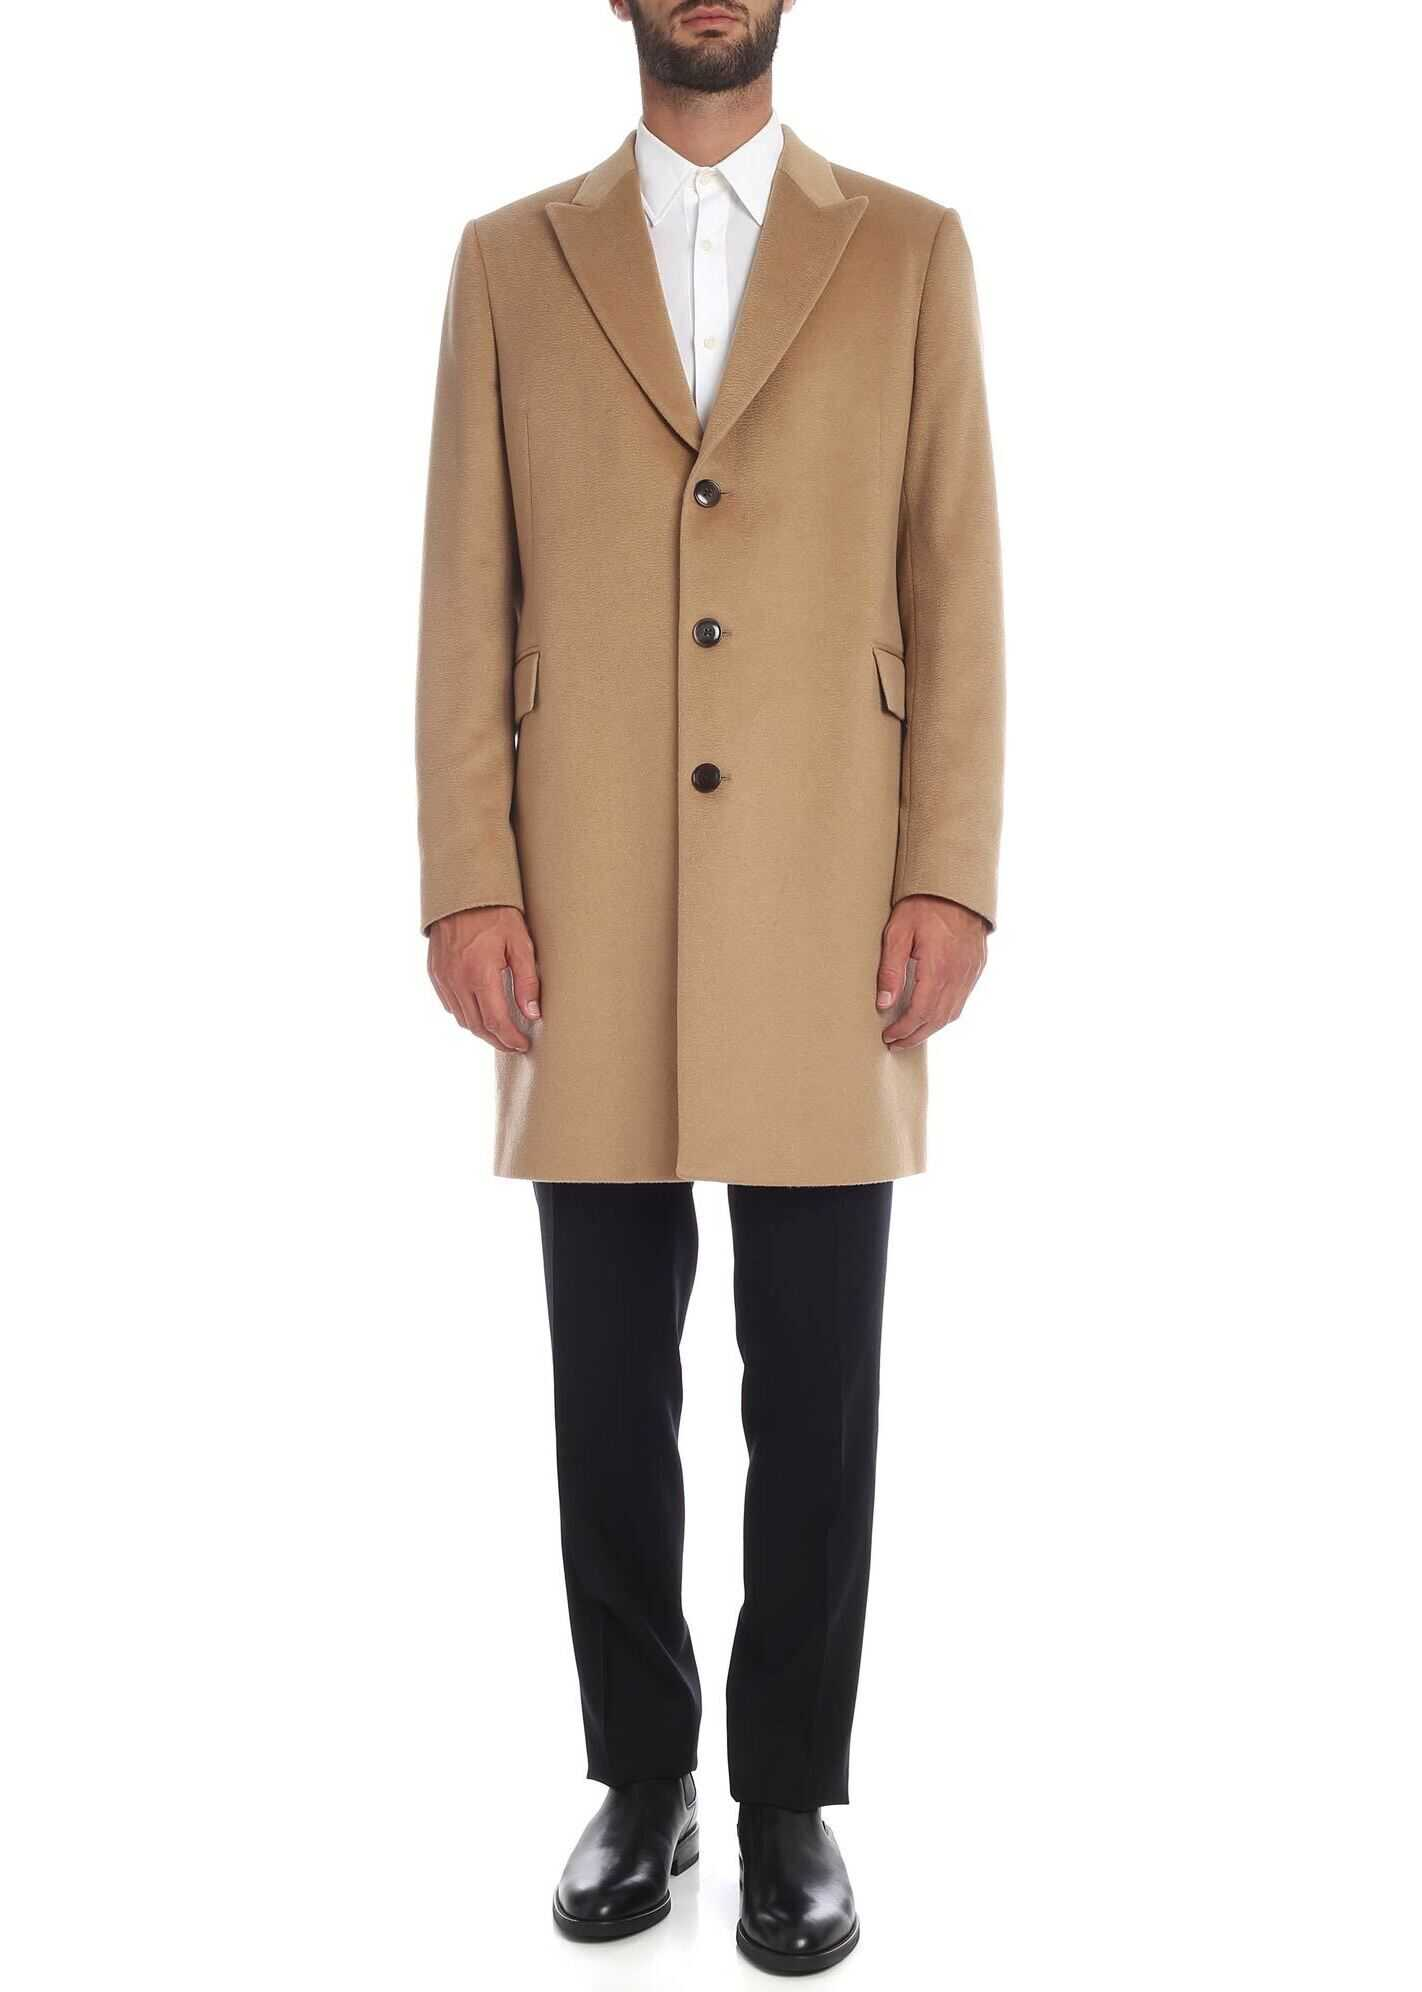 Pure Cashmere Coat In Camel Color thumbnail